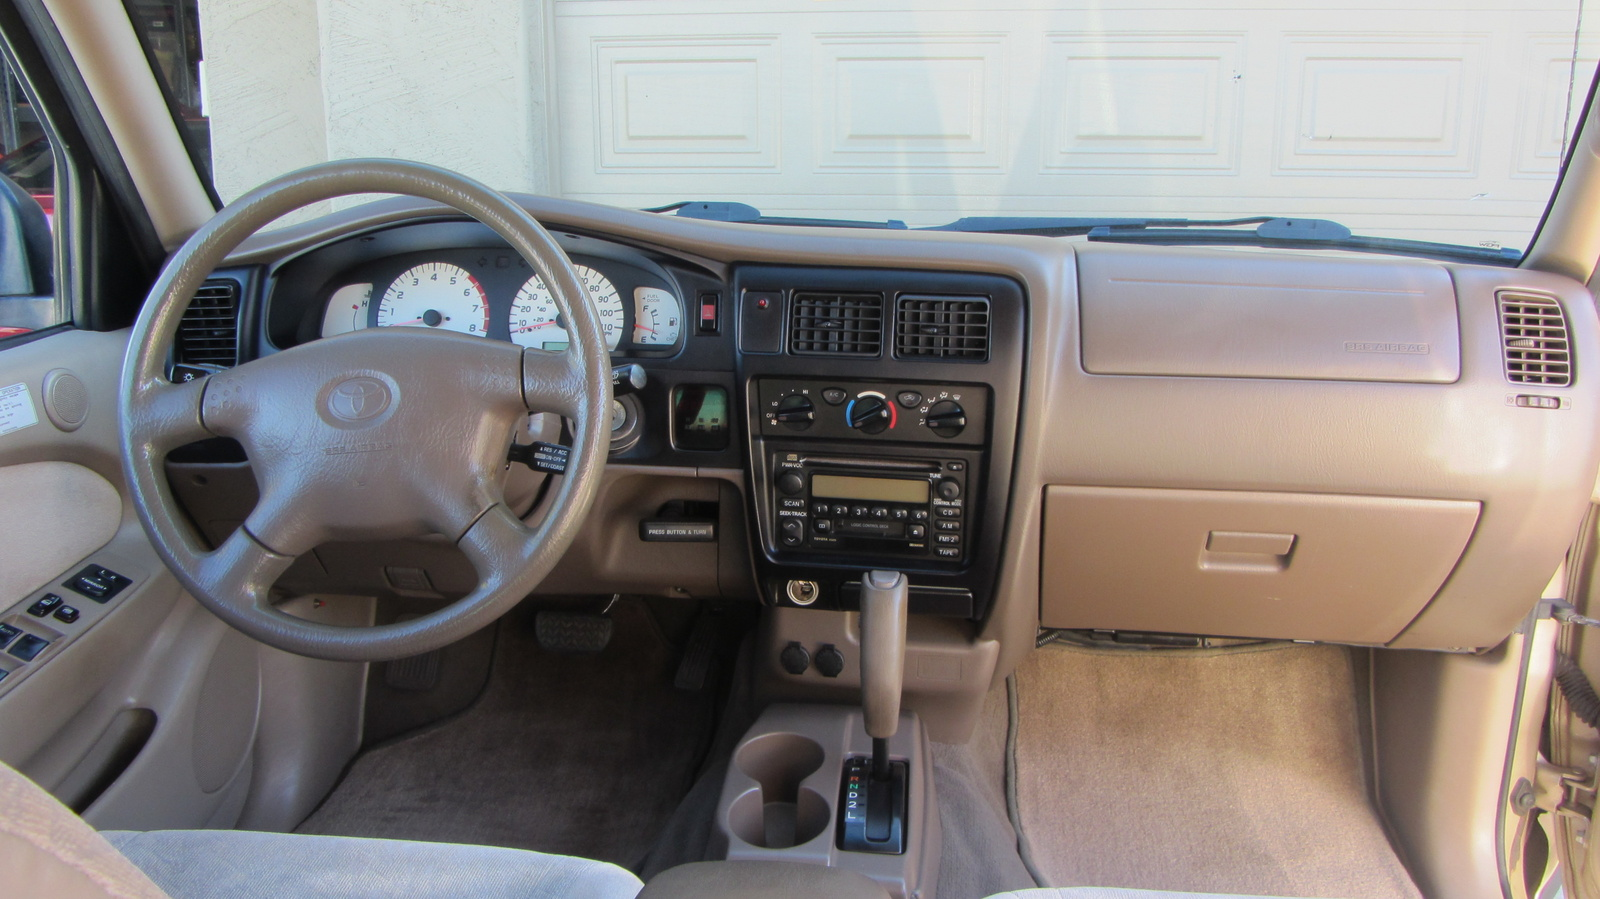 Of 2001 toyota tacoma 2 dr prerunner v6 extended cab sb - 2001 toyota tacoma interior parts ...